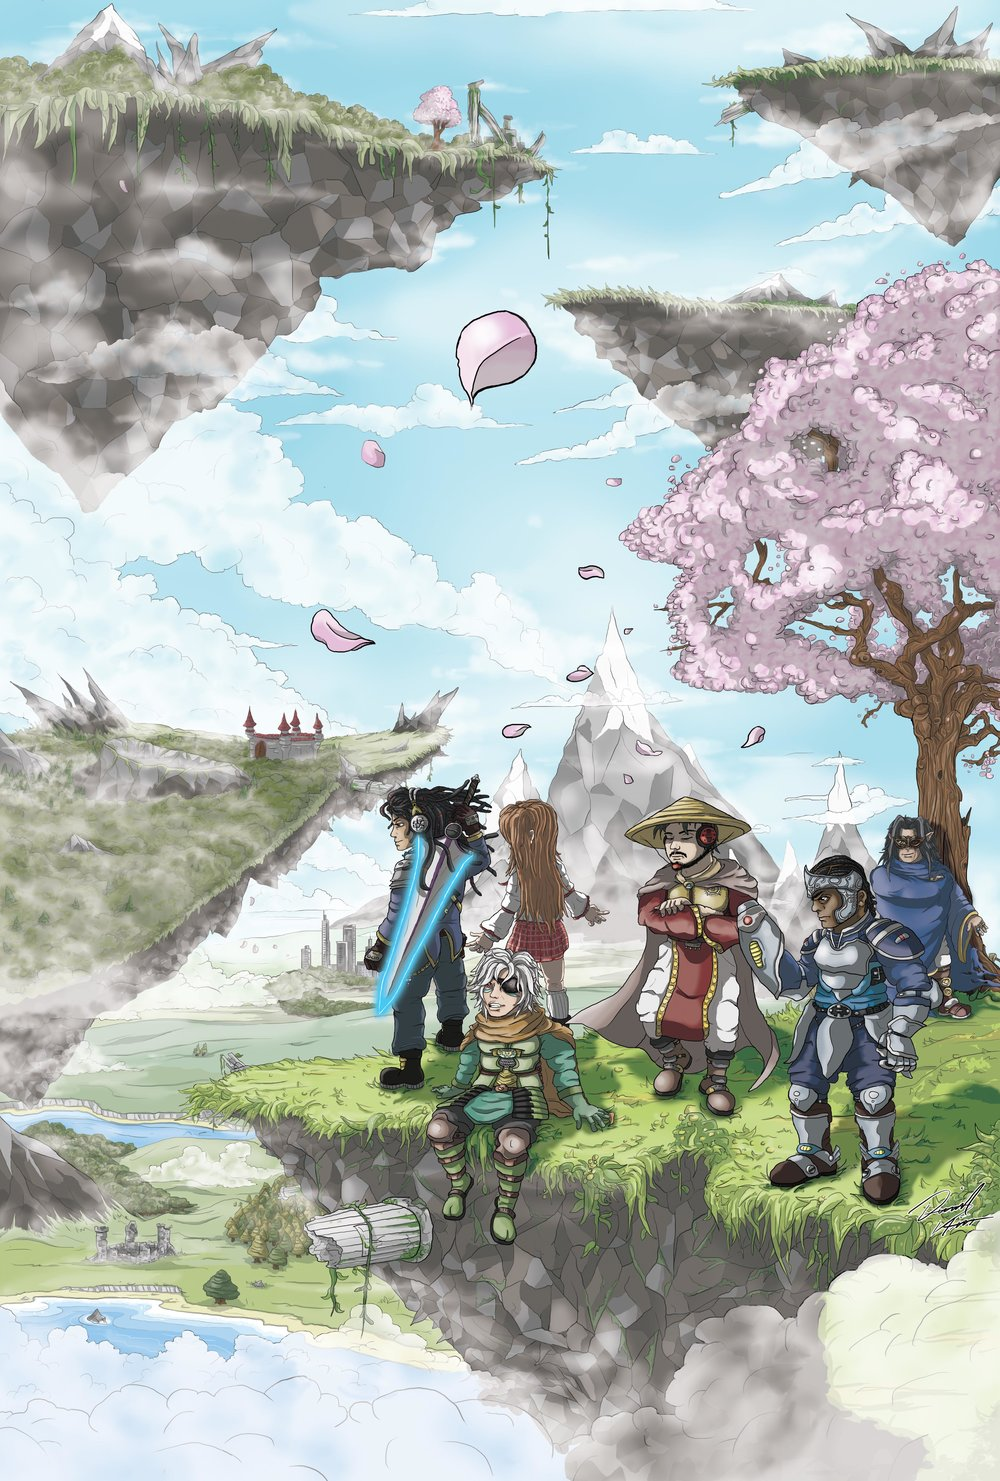 Tales of the Elements FC, by Last BeNeVoLeNcE  was an absolute dream project for me; Creating huge poster art of a huge jrpg inspired world and characters, for not just an album but a retro rpg video game, all in one awesome package.